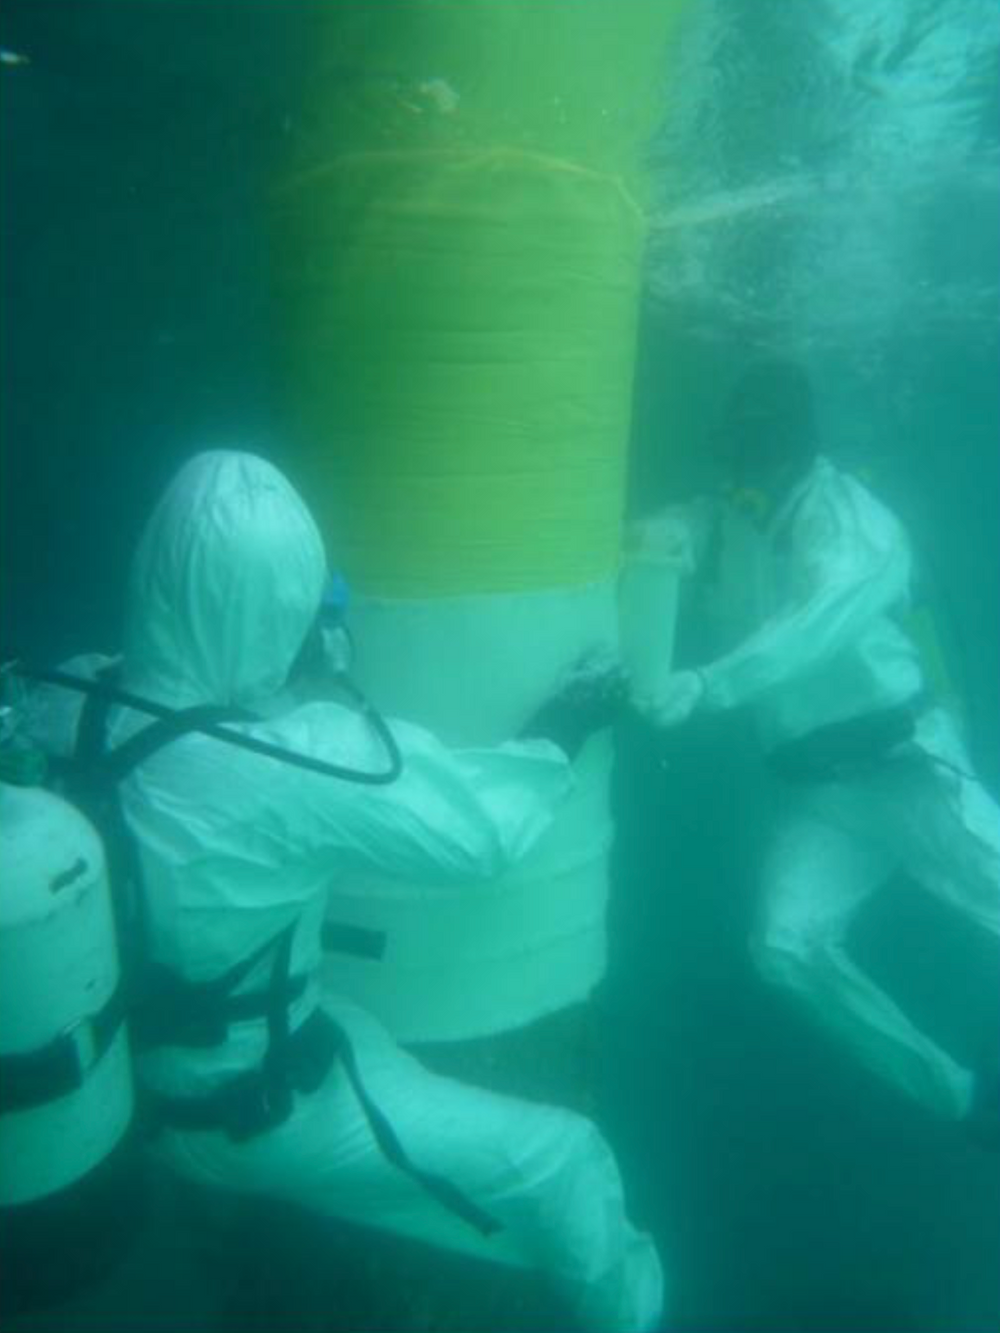 Application of the STOPAQ Outerglass XT 24 corrosion prevention under water that can be applied underwater